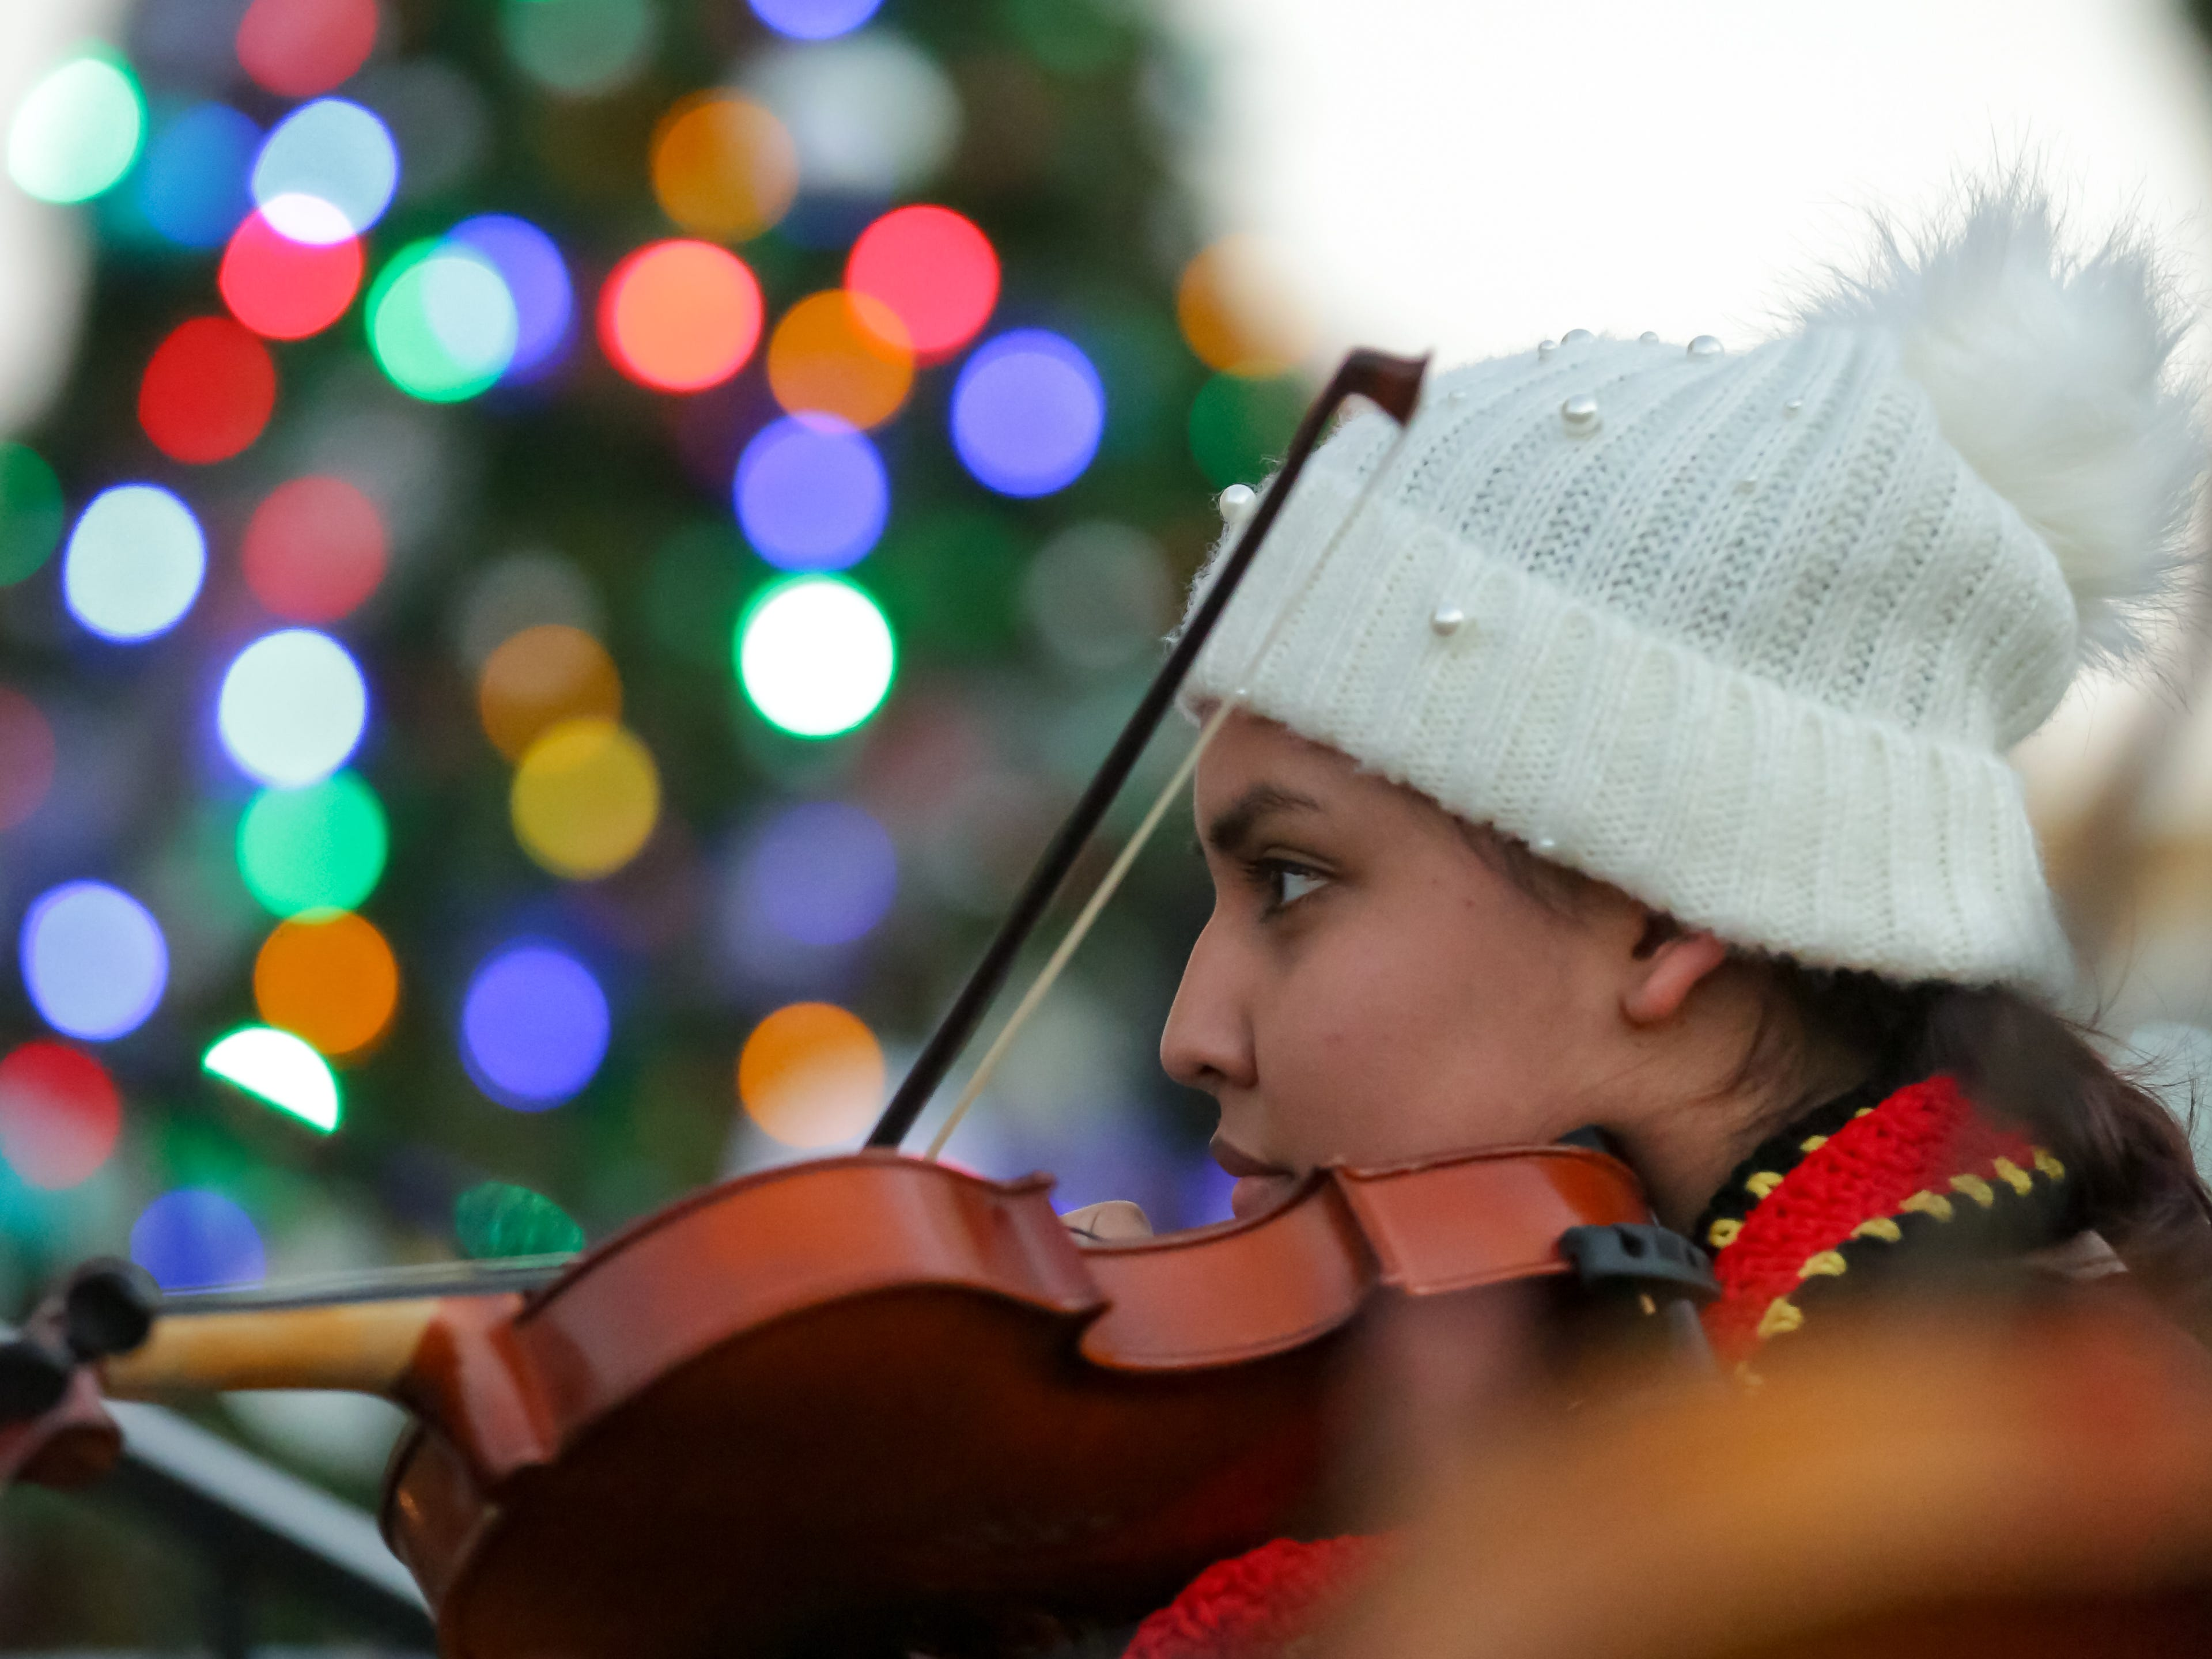 Cinthia Valdez, with Mariachi Aguilas, tunes her violin on Monday, Dec. 24, 2018 at the Mesilla Plaza.